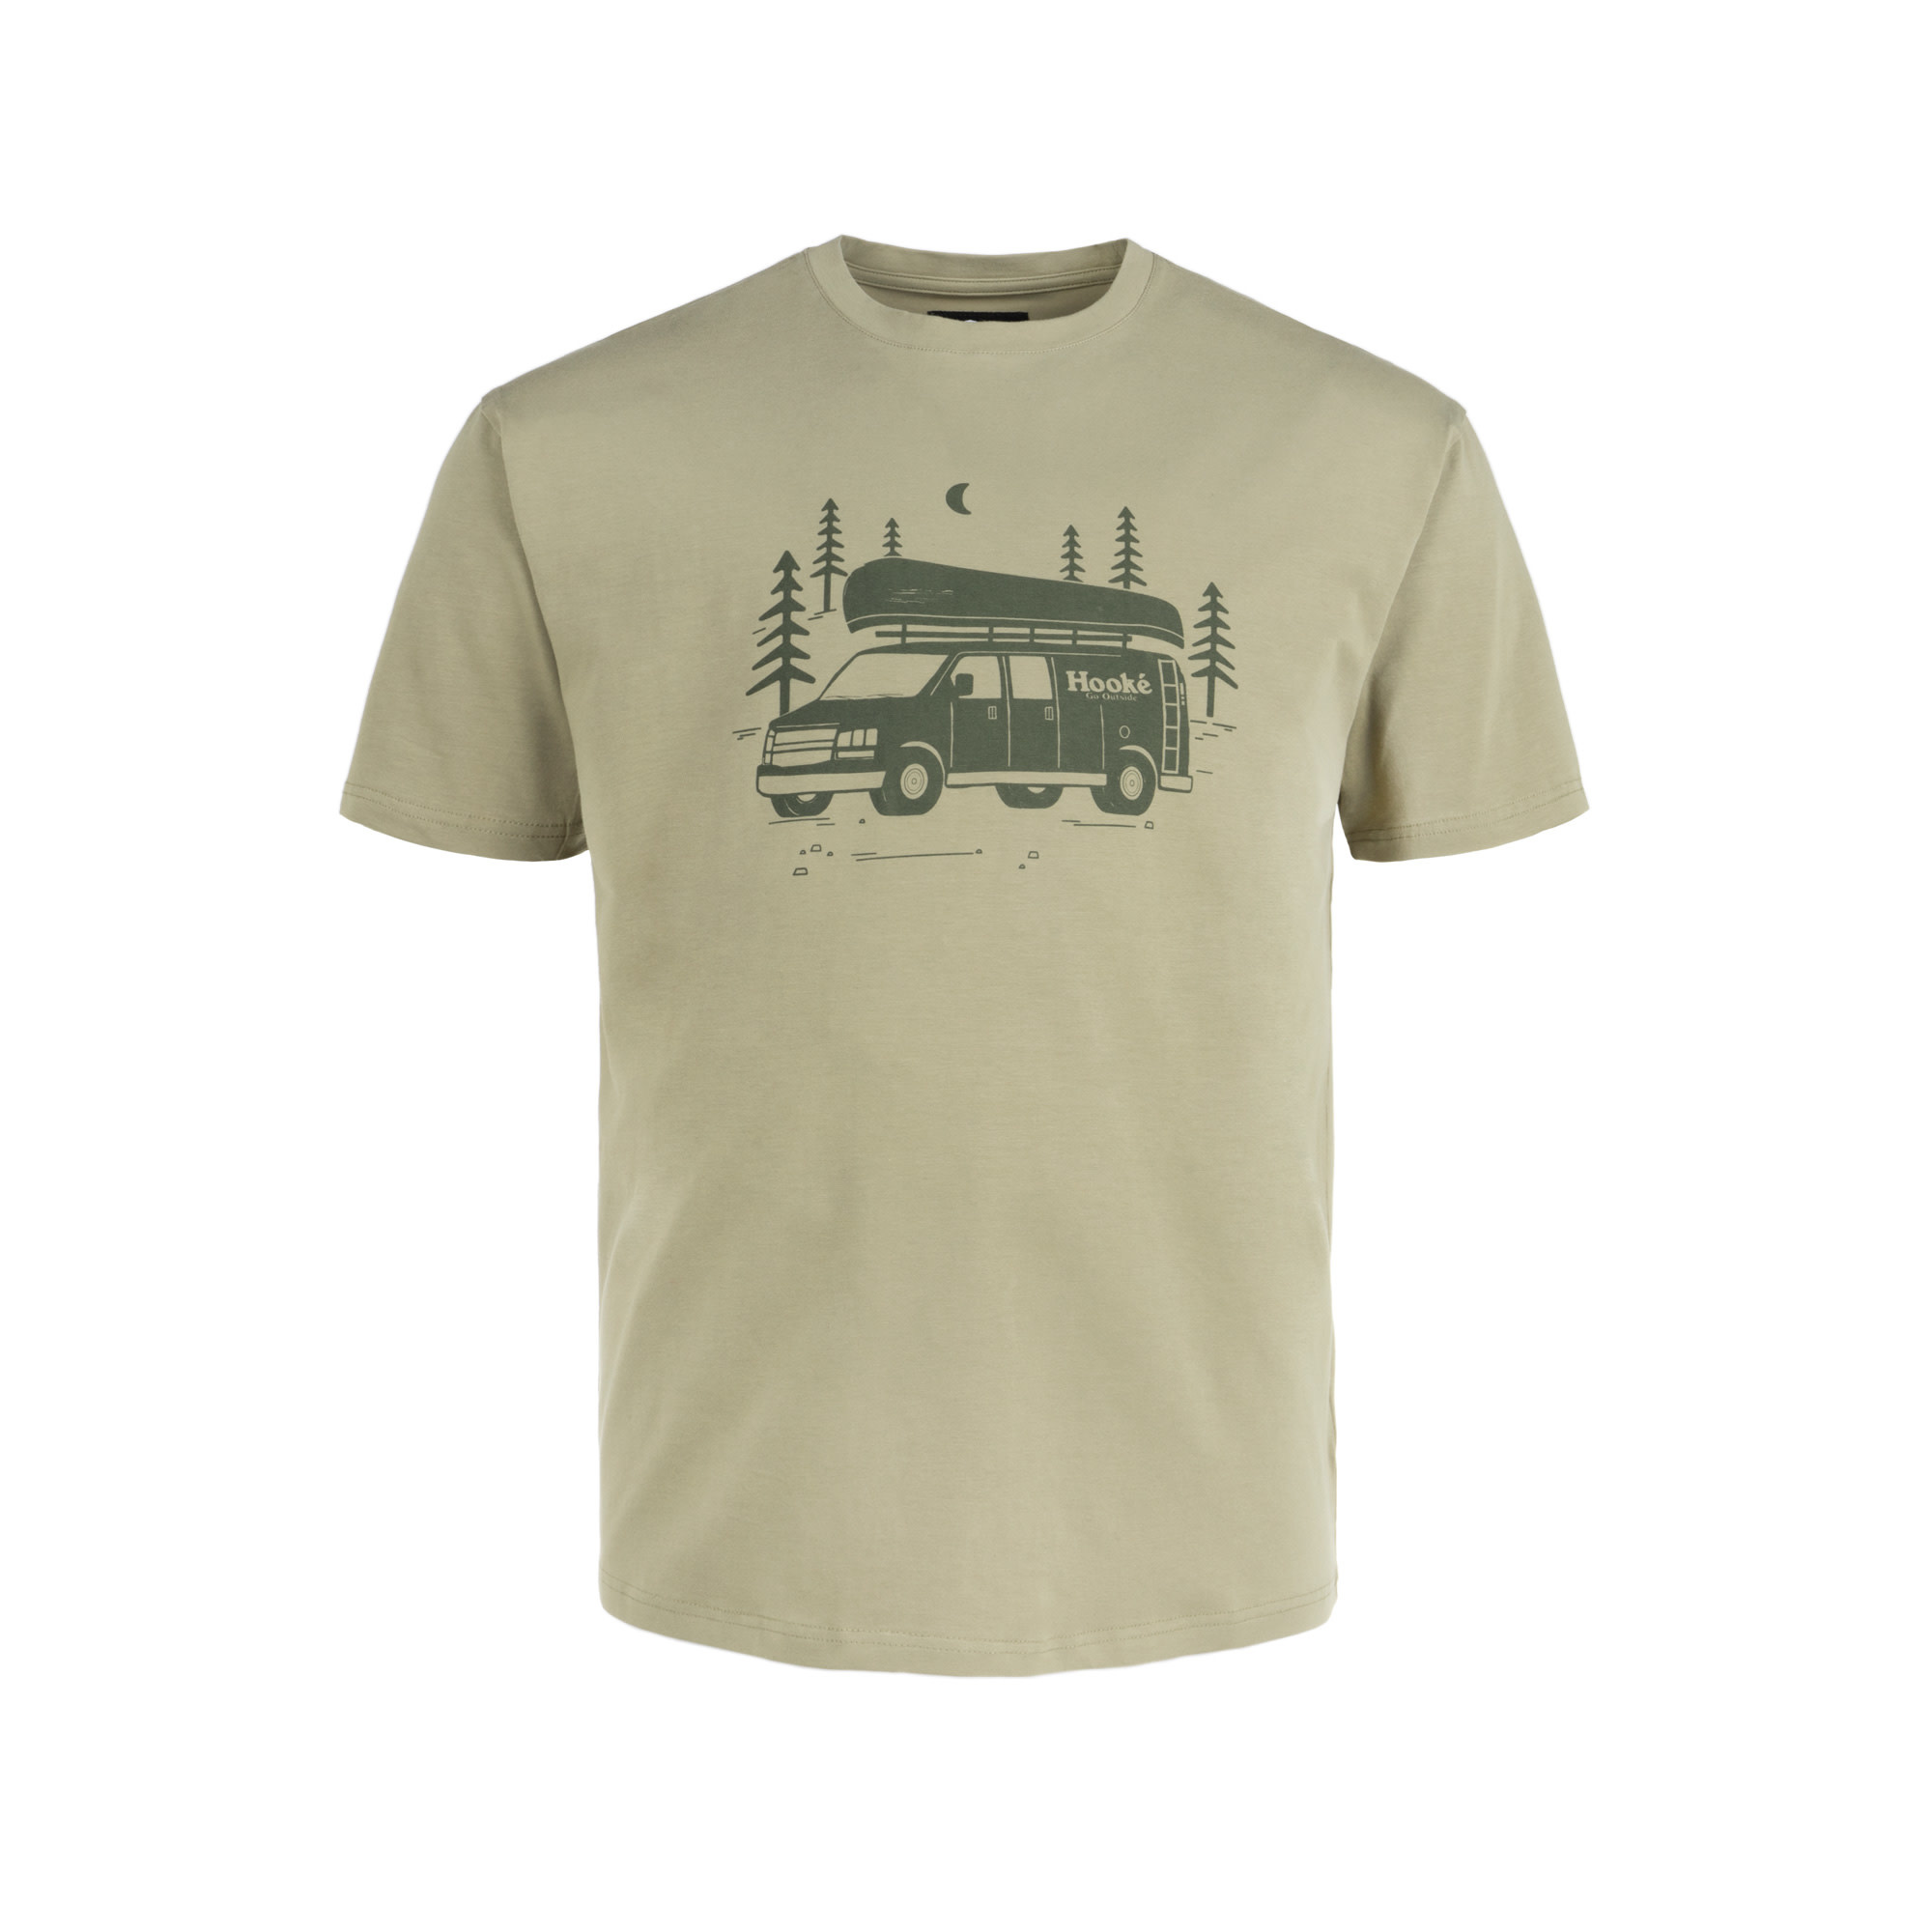 Hooké Van T-Shirt Light Olive